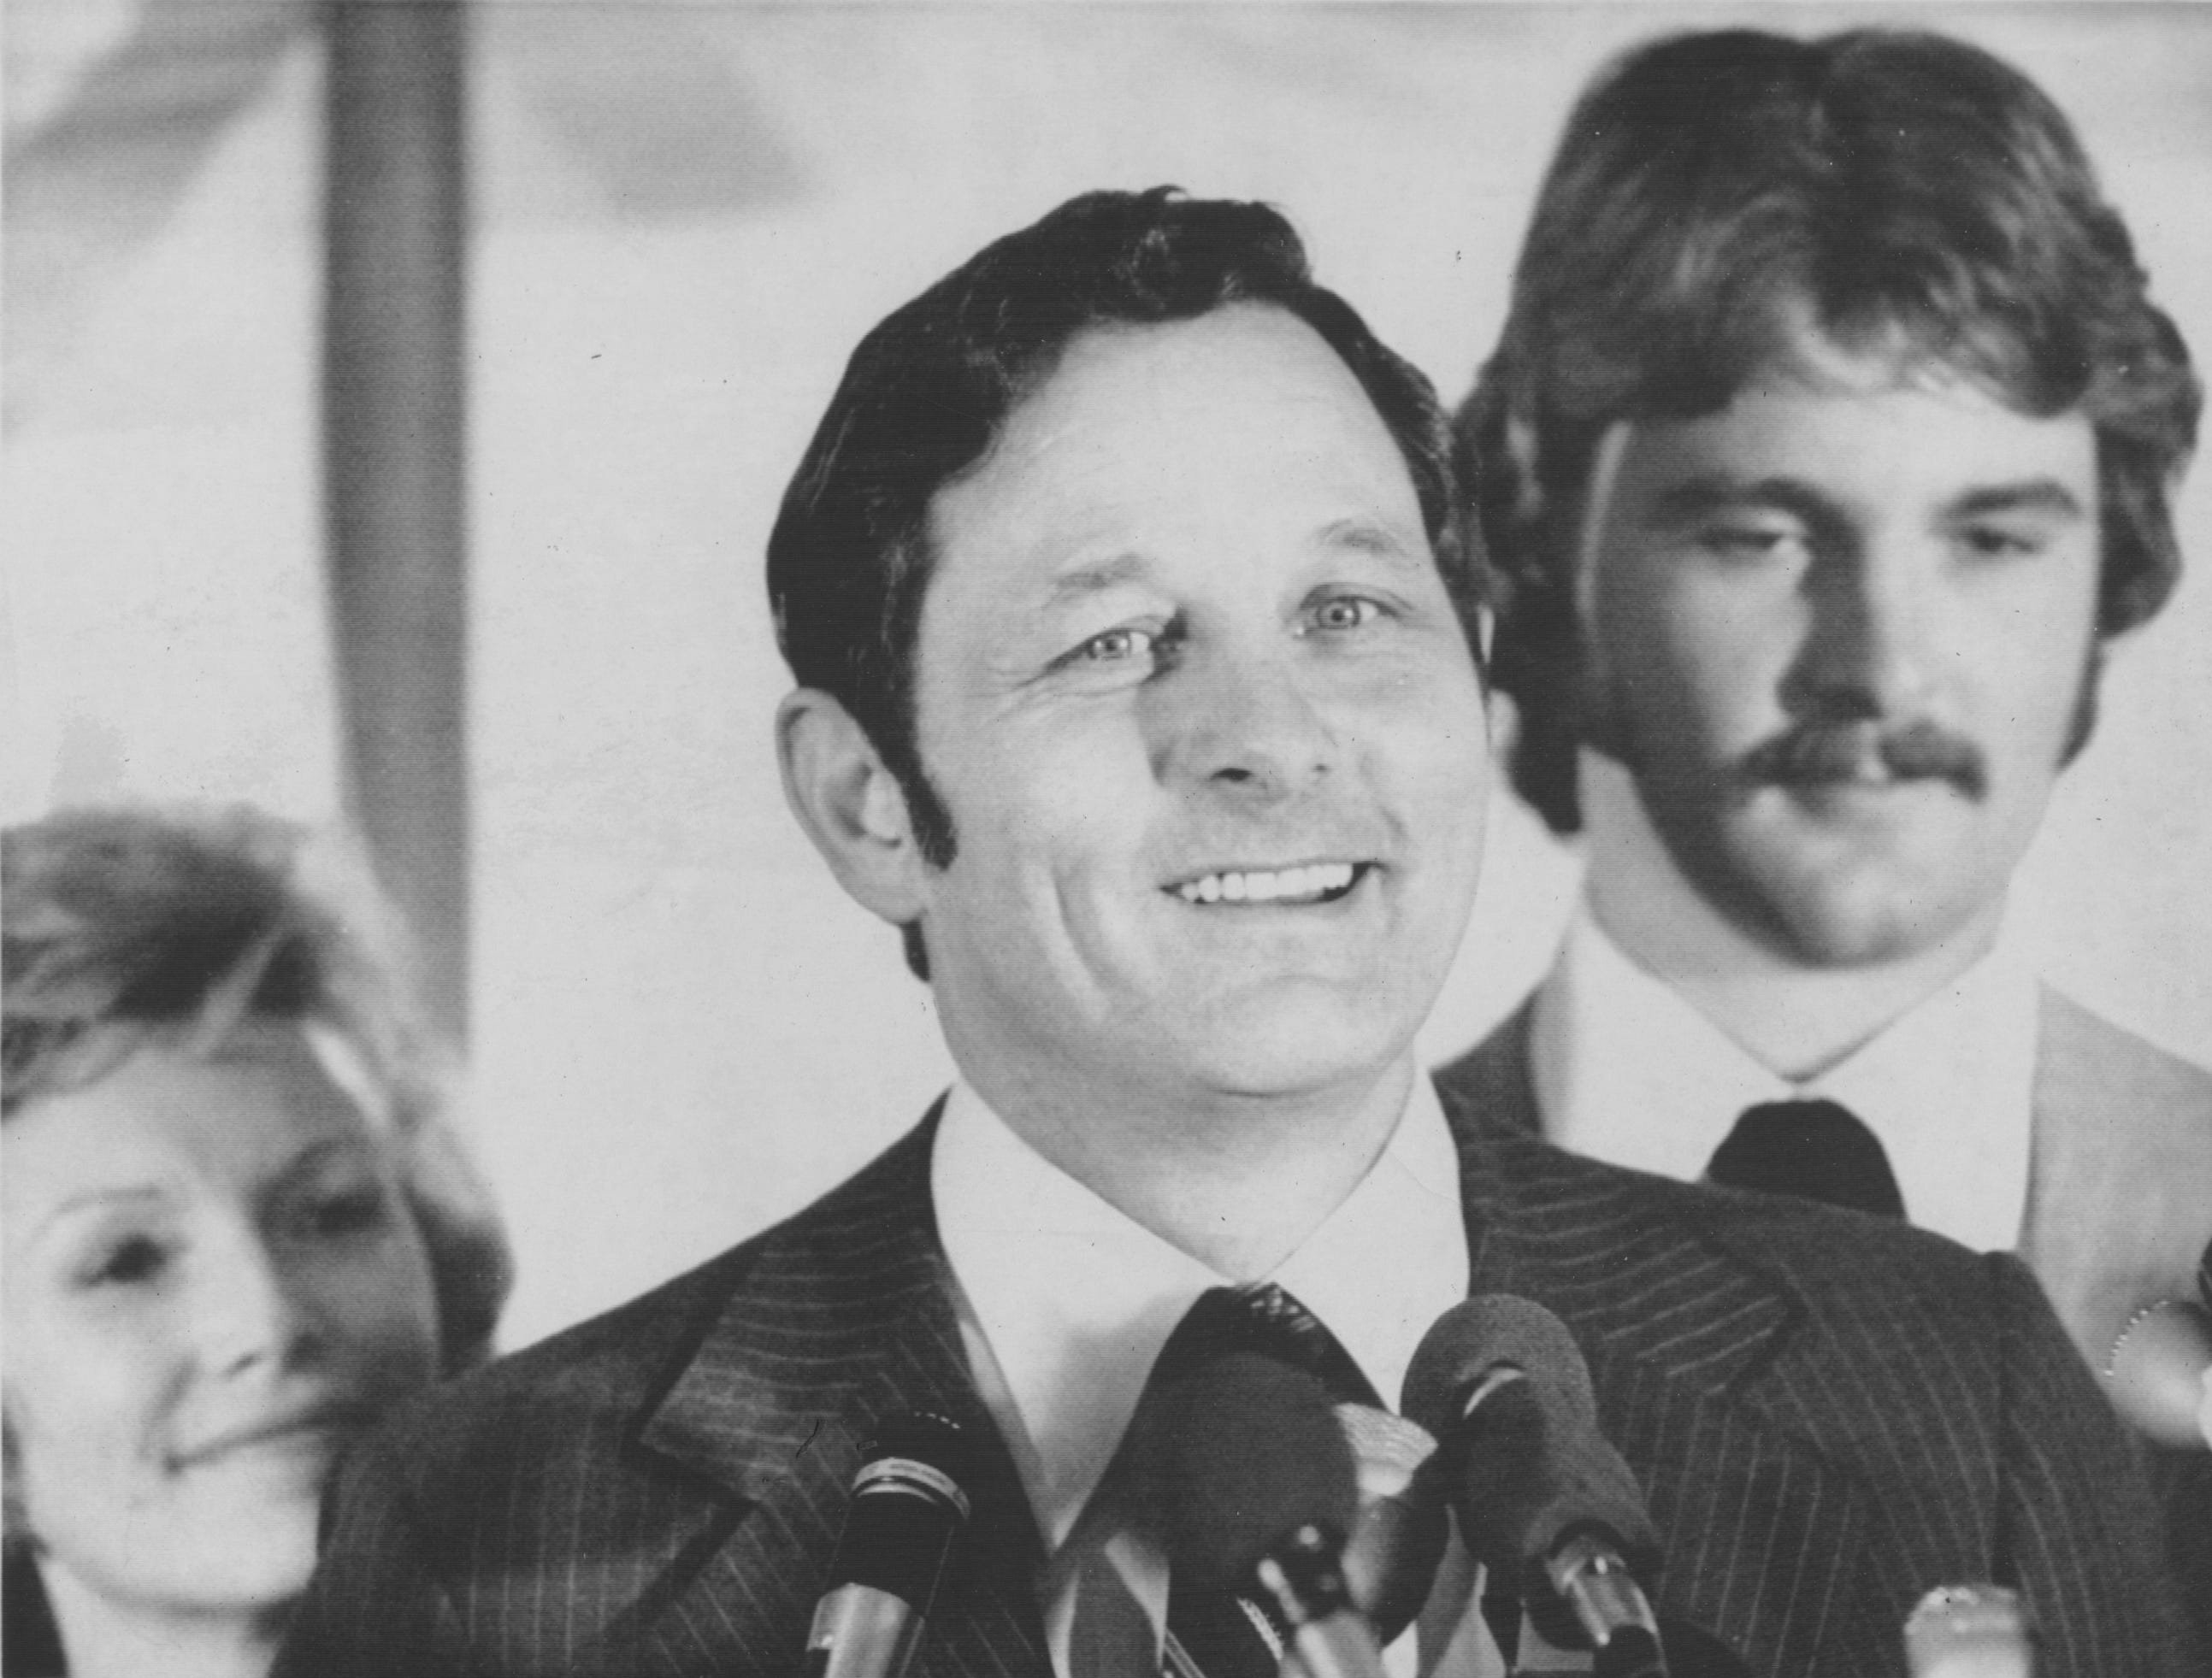 Shirkieville, Ind., Indiana junior Sen. Birch Bayh at a rally on Oct. 21, 1975 with friends on his boyhood farm tells the more than 600 supporters that he will seek the Democratic presidential nomination. With Bayh are his wife, Marvella (left) and son, Evan. Bayh later made the formal announcement in the Indiana House chambers. The third-term senator is the ninth declared candidate.